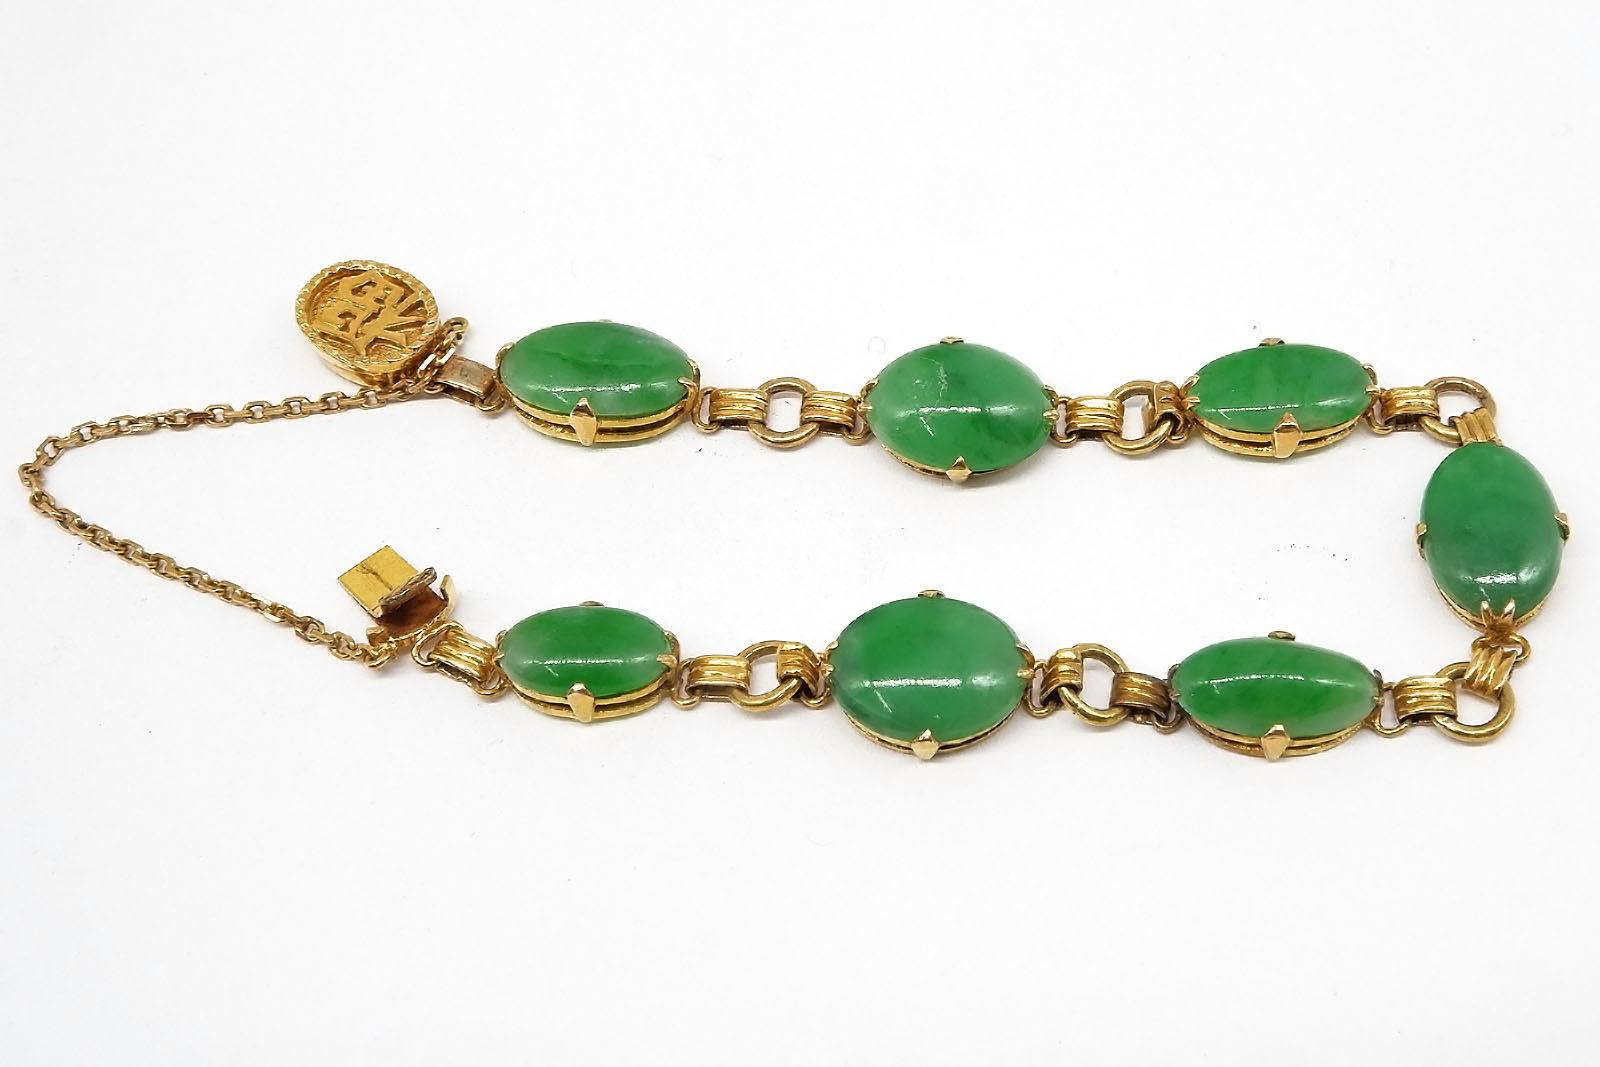 'Chinese 14ct Yellow Gold Bracelet with Seven Oval Cabochons of Apple Green Jadeite'